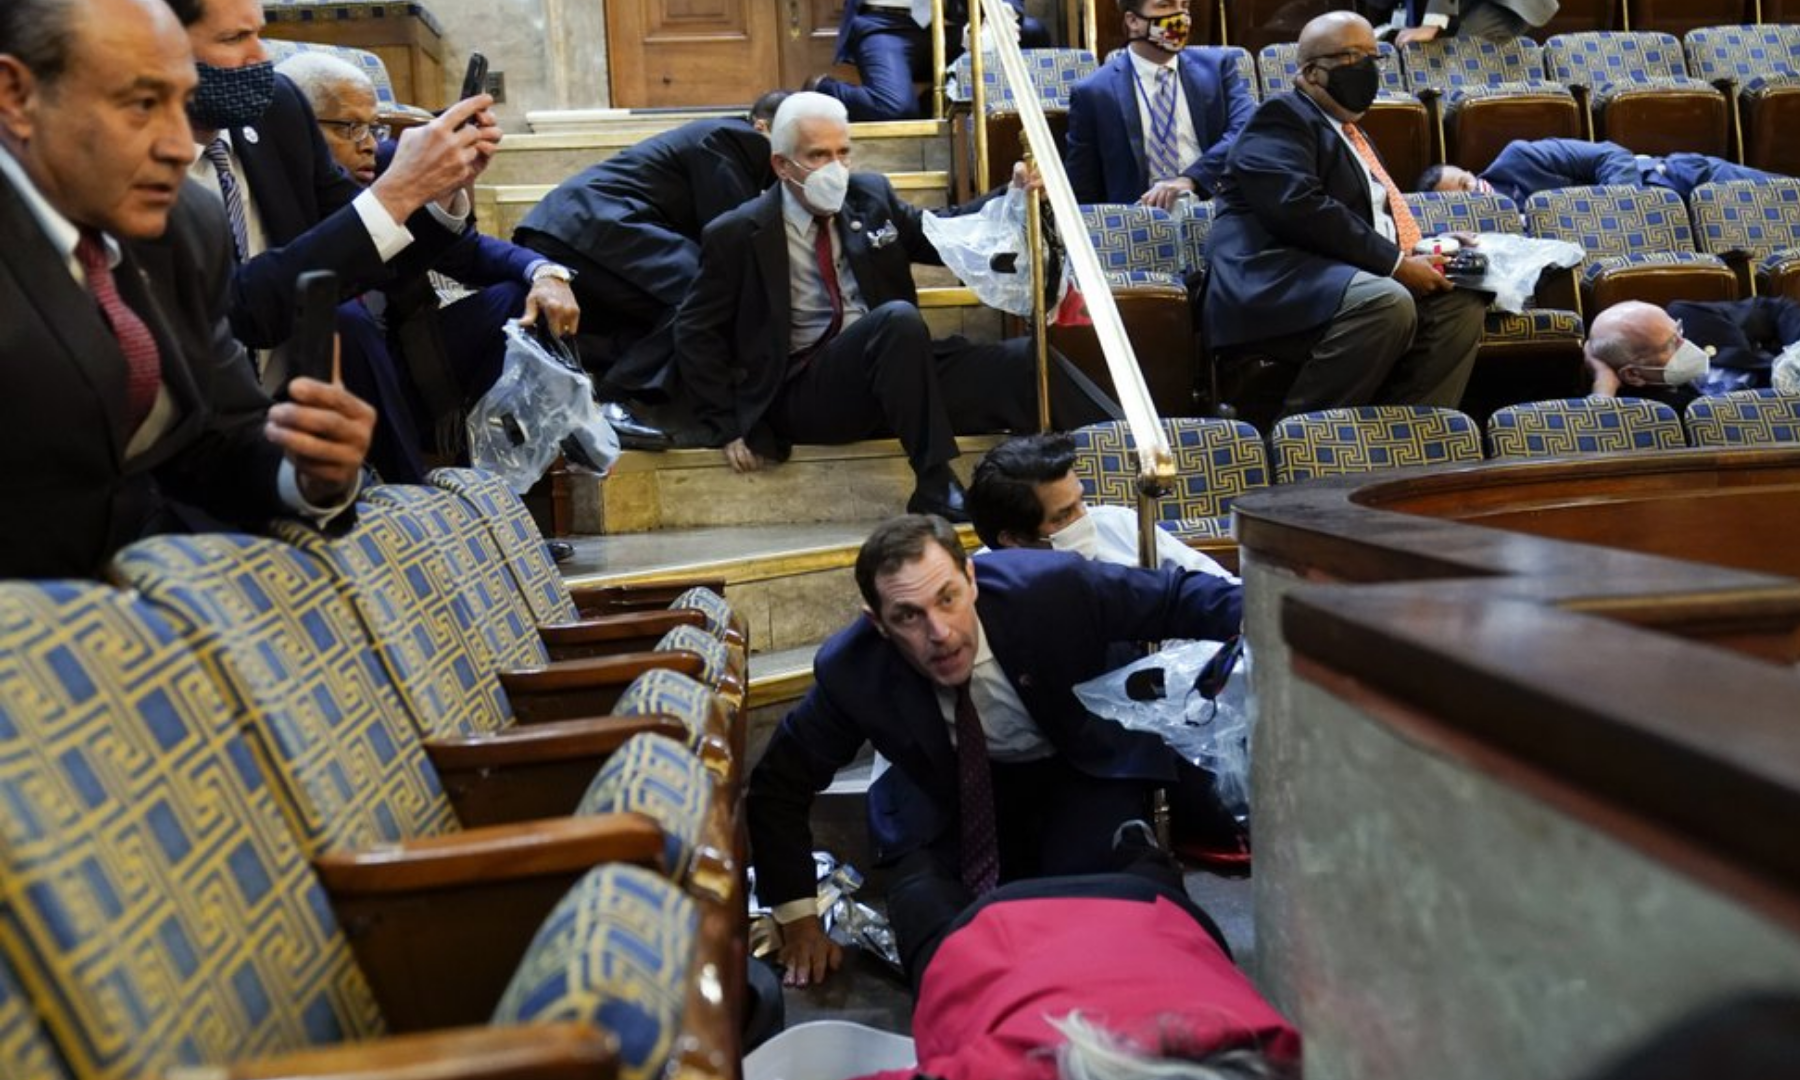 People shelter in the House gallery as protesters try to break into the House Chamber at the US Capitol on January 6, 2021 in Washington, US. — AP